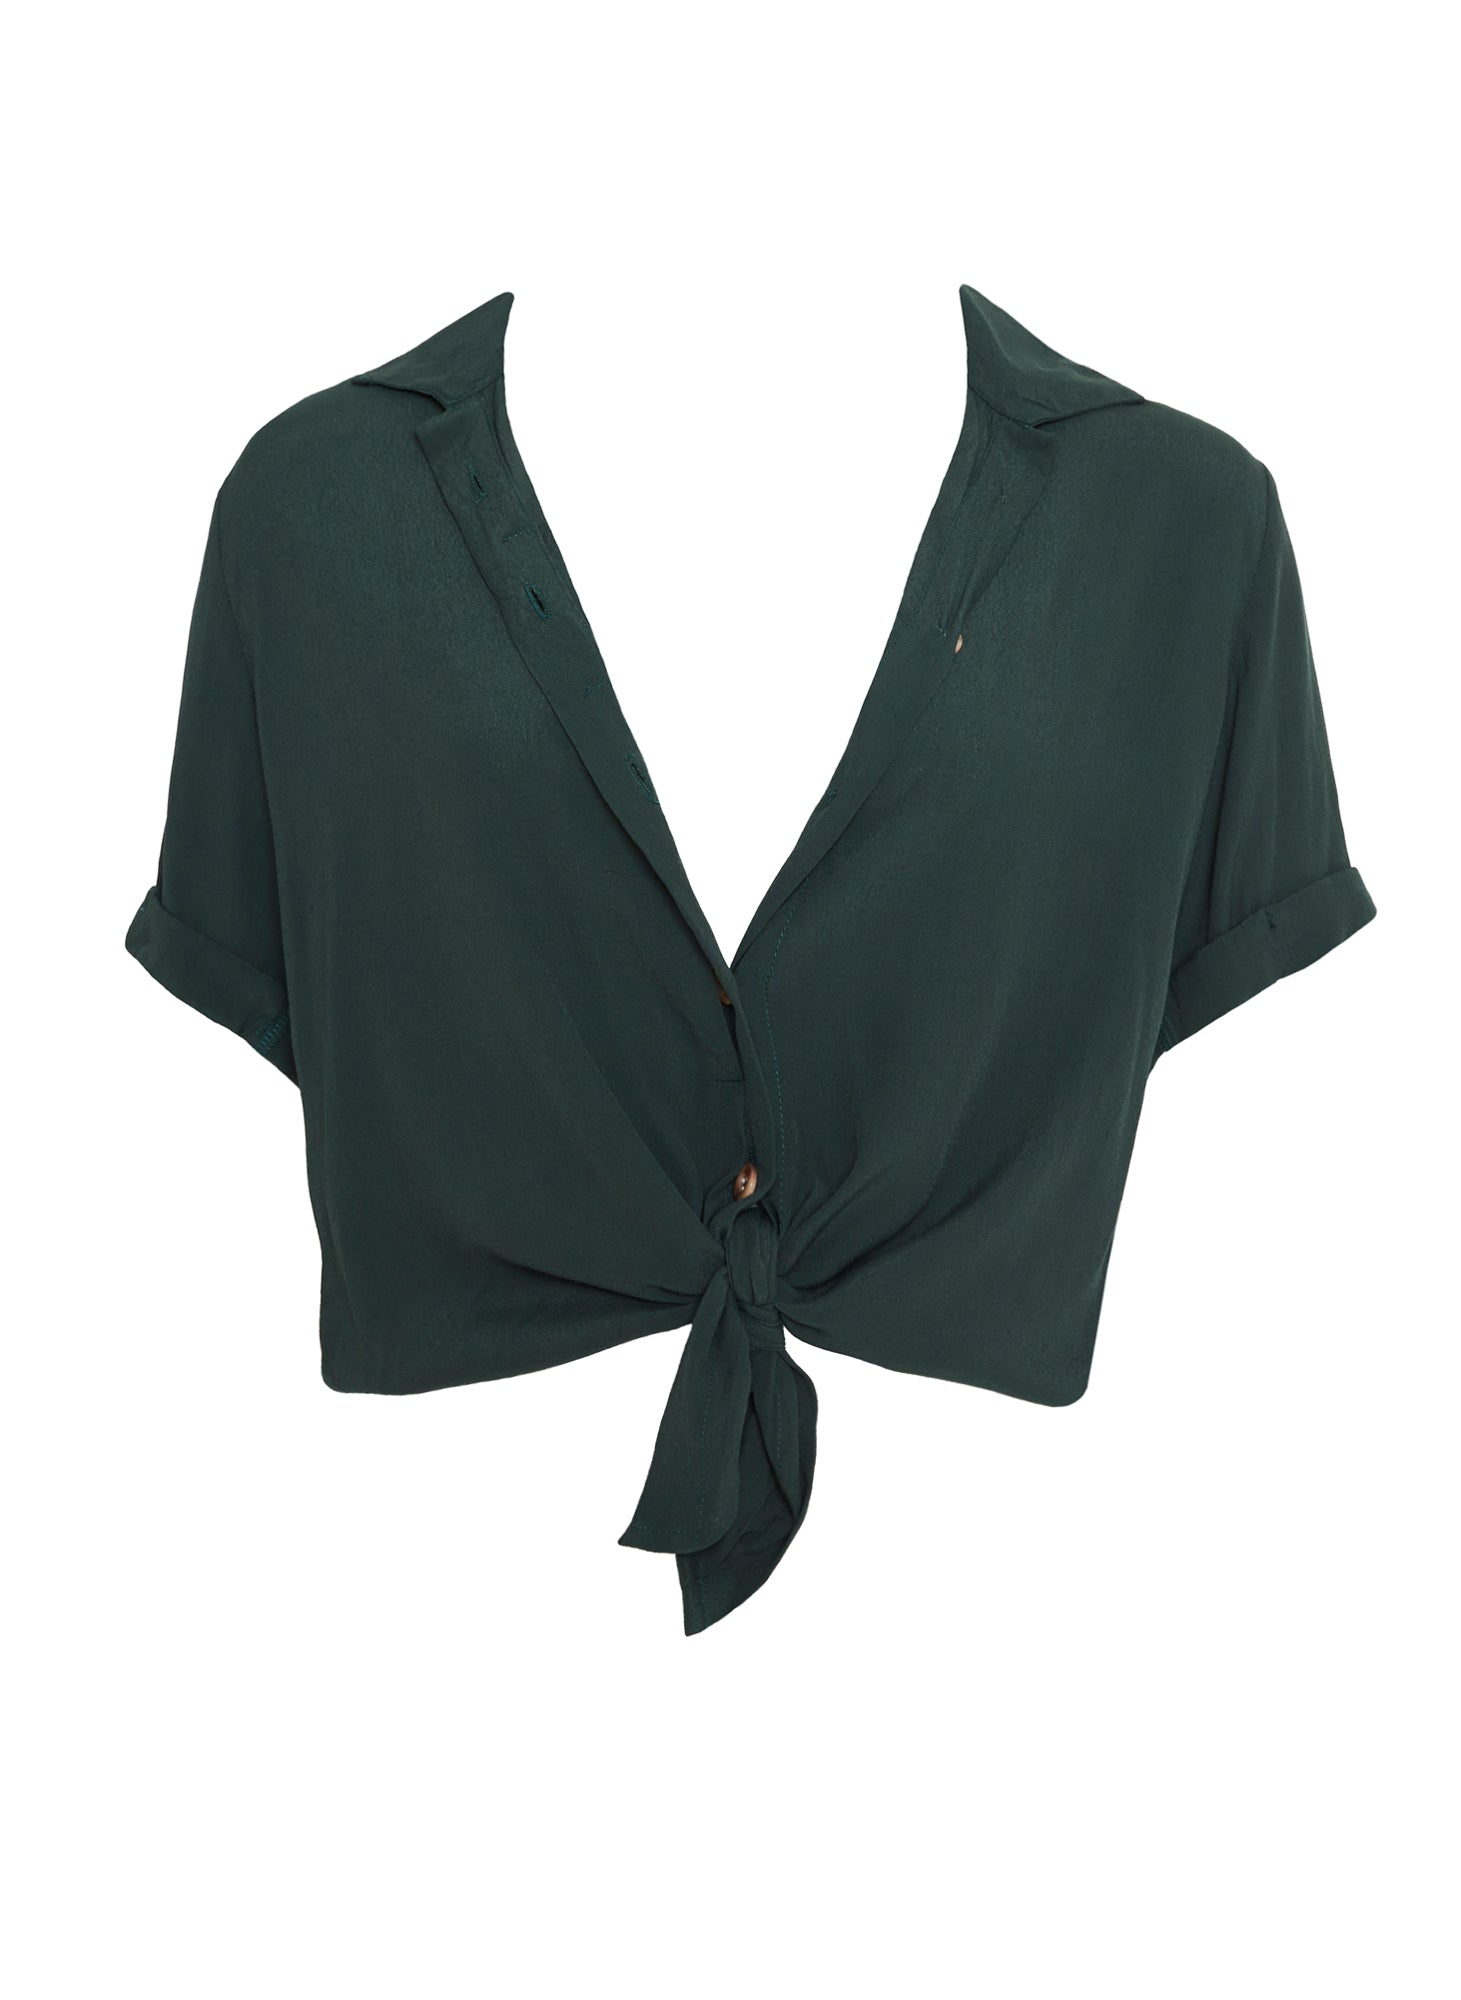 PLAIN PINE GREEN - TOULIN SHIRT